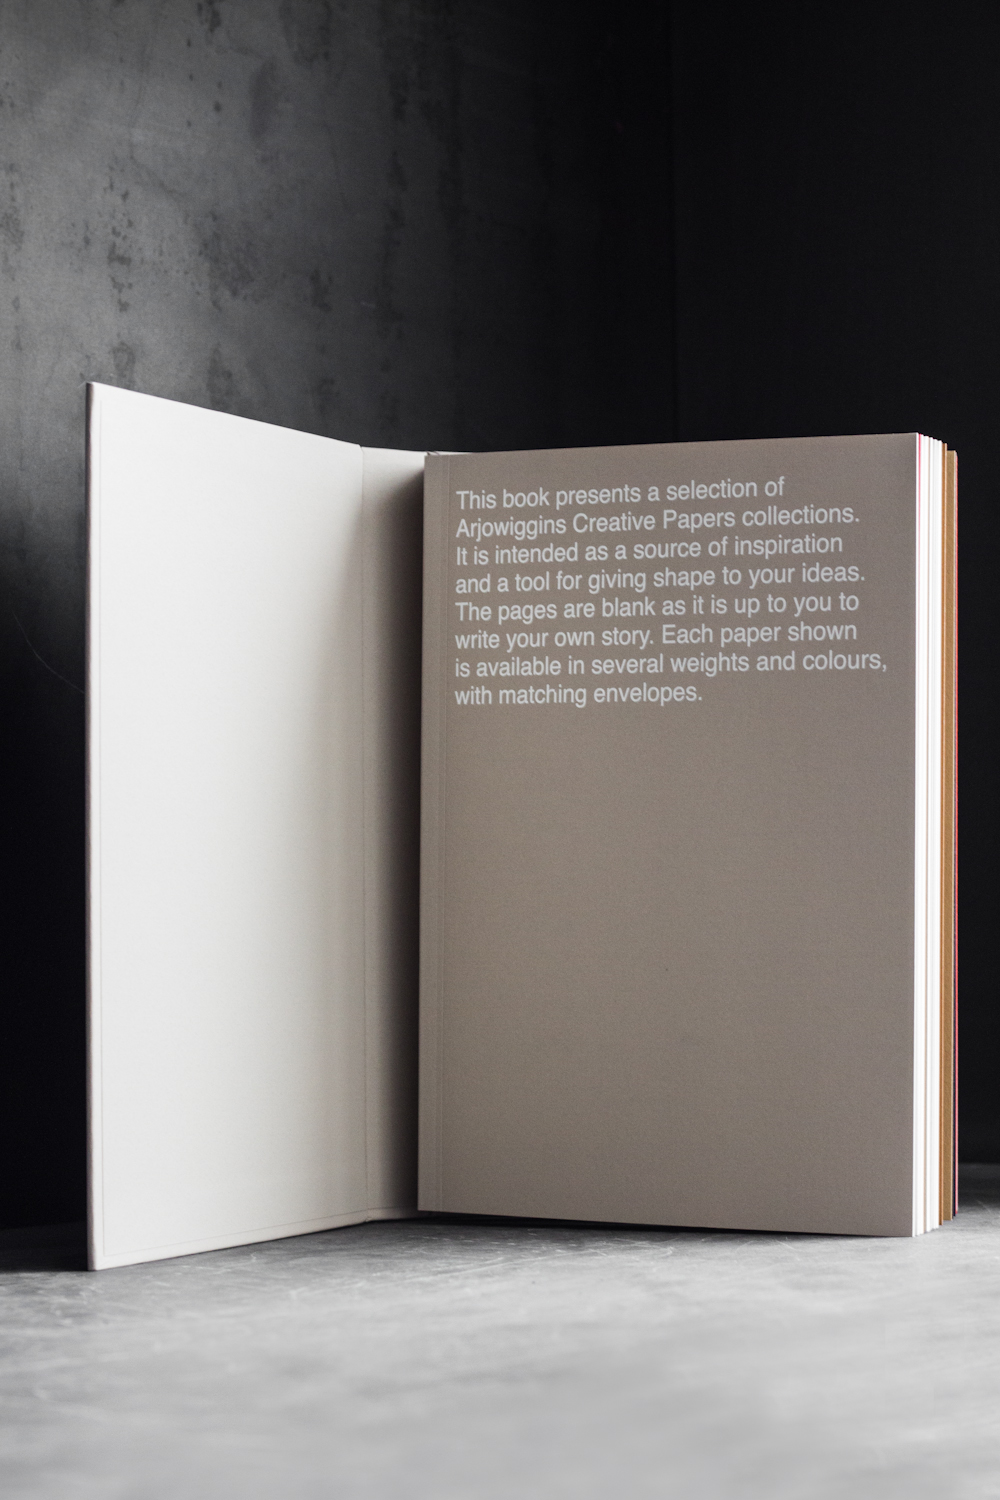 arjowiggins creative paper collection book photography by dario ruggiero | S/TUDIO